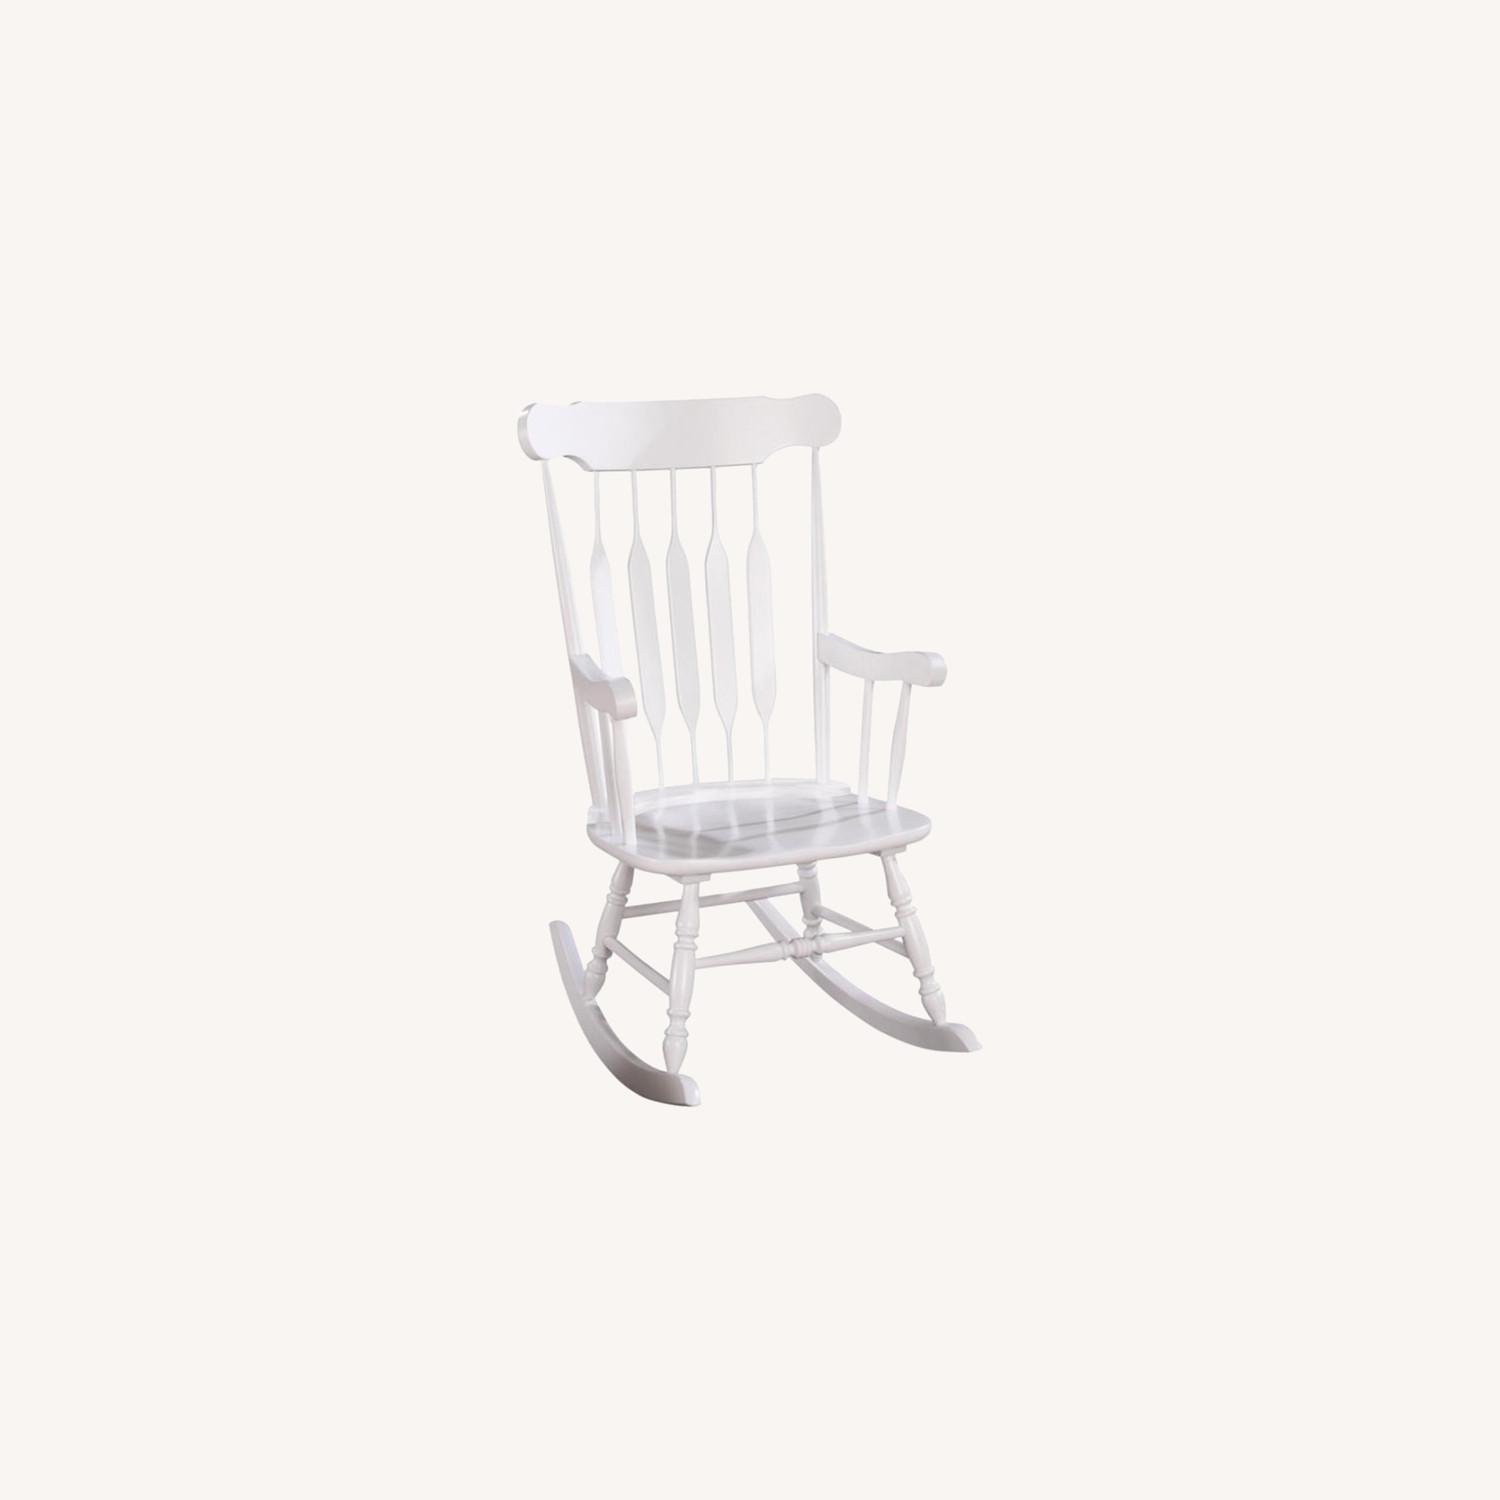 Rocking Chair In White Rubberwood Construction - image-3